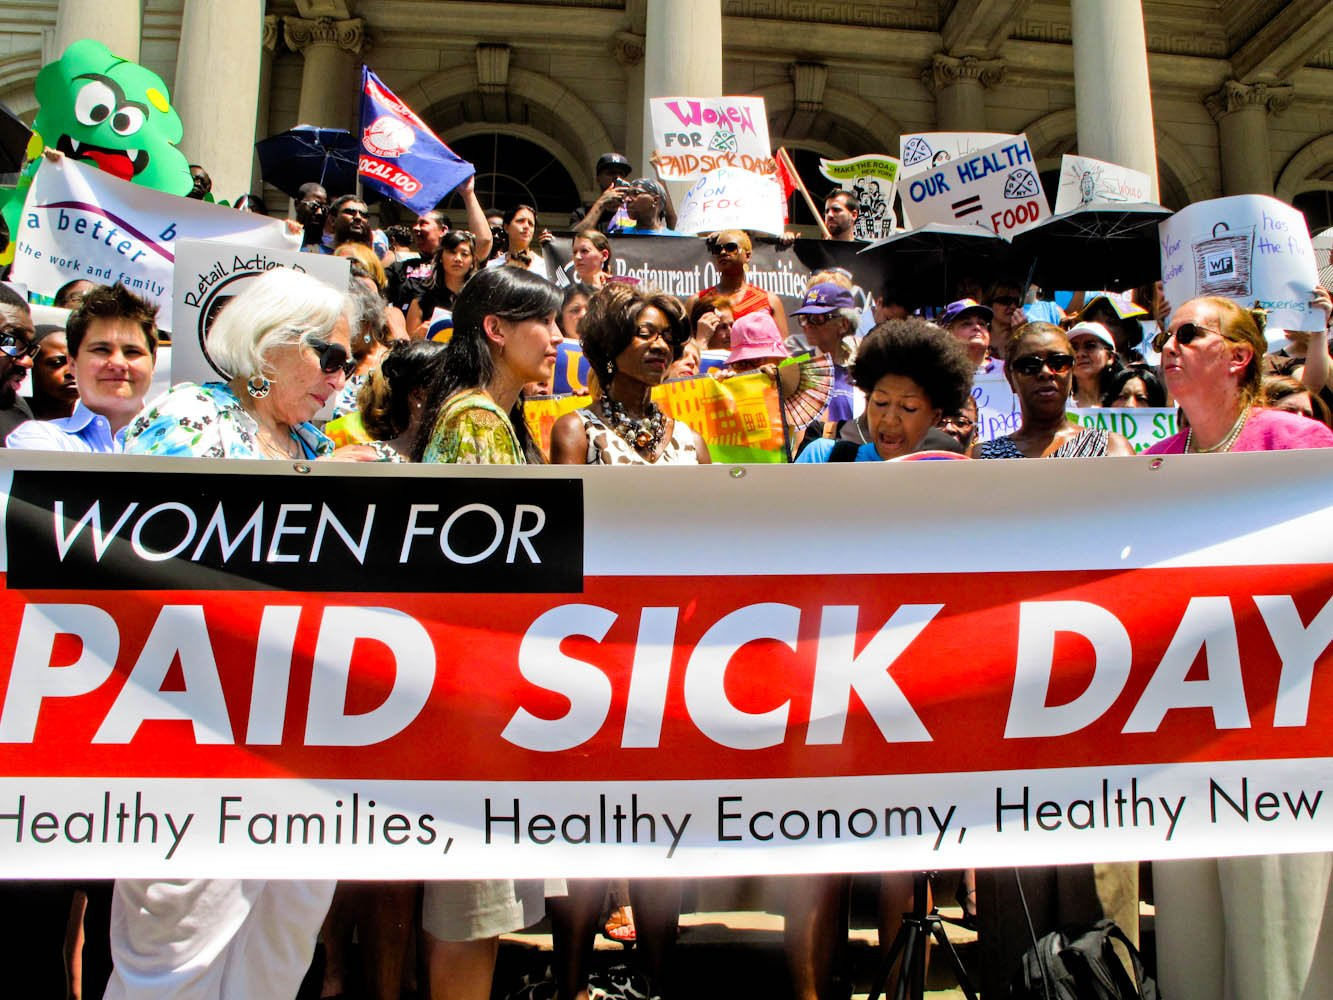 Thumbnail for What's next for Paid Sick Days in 2017?